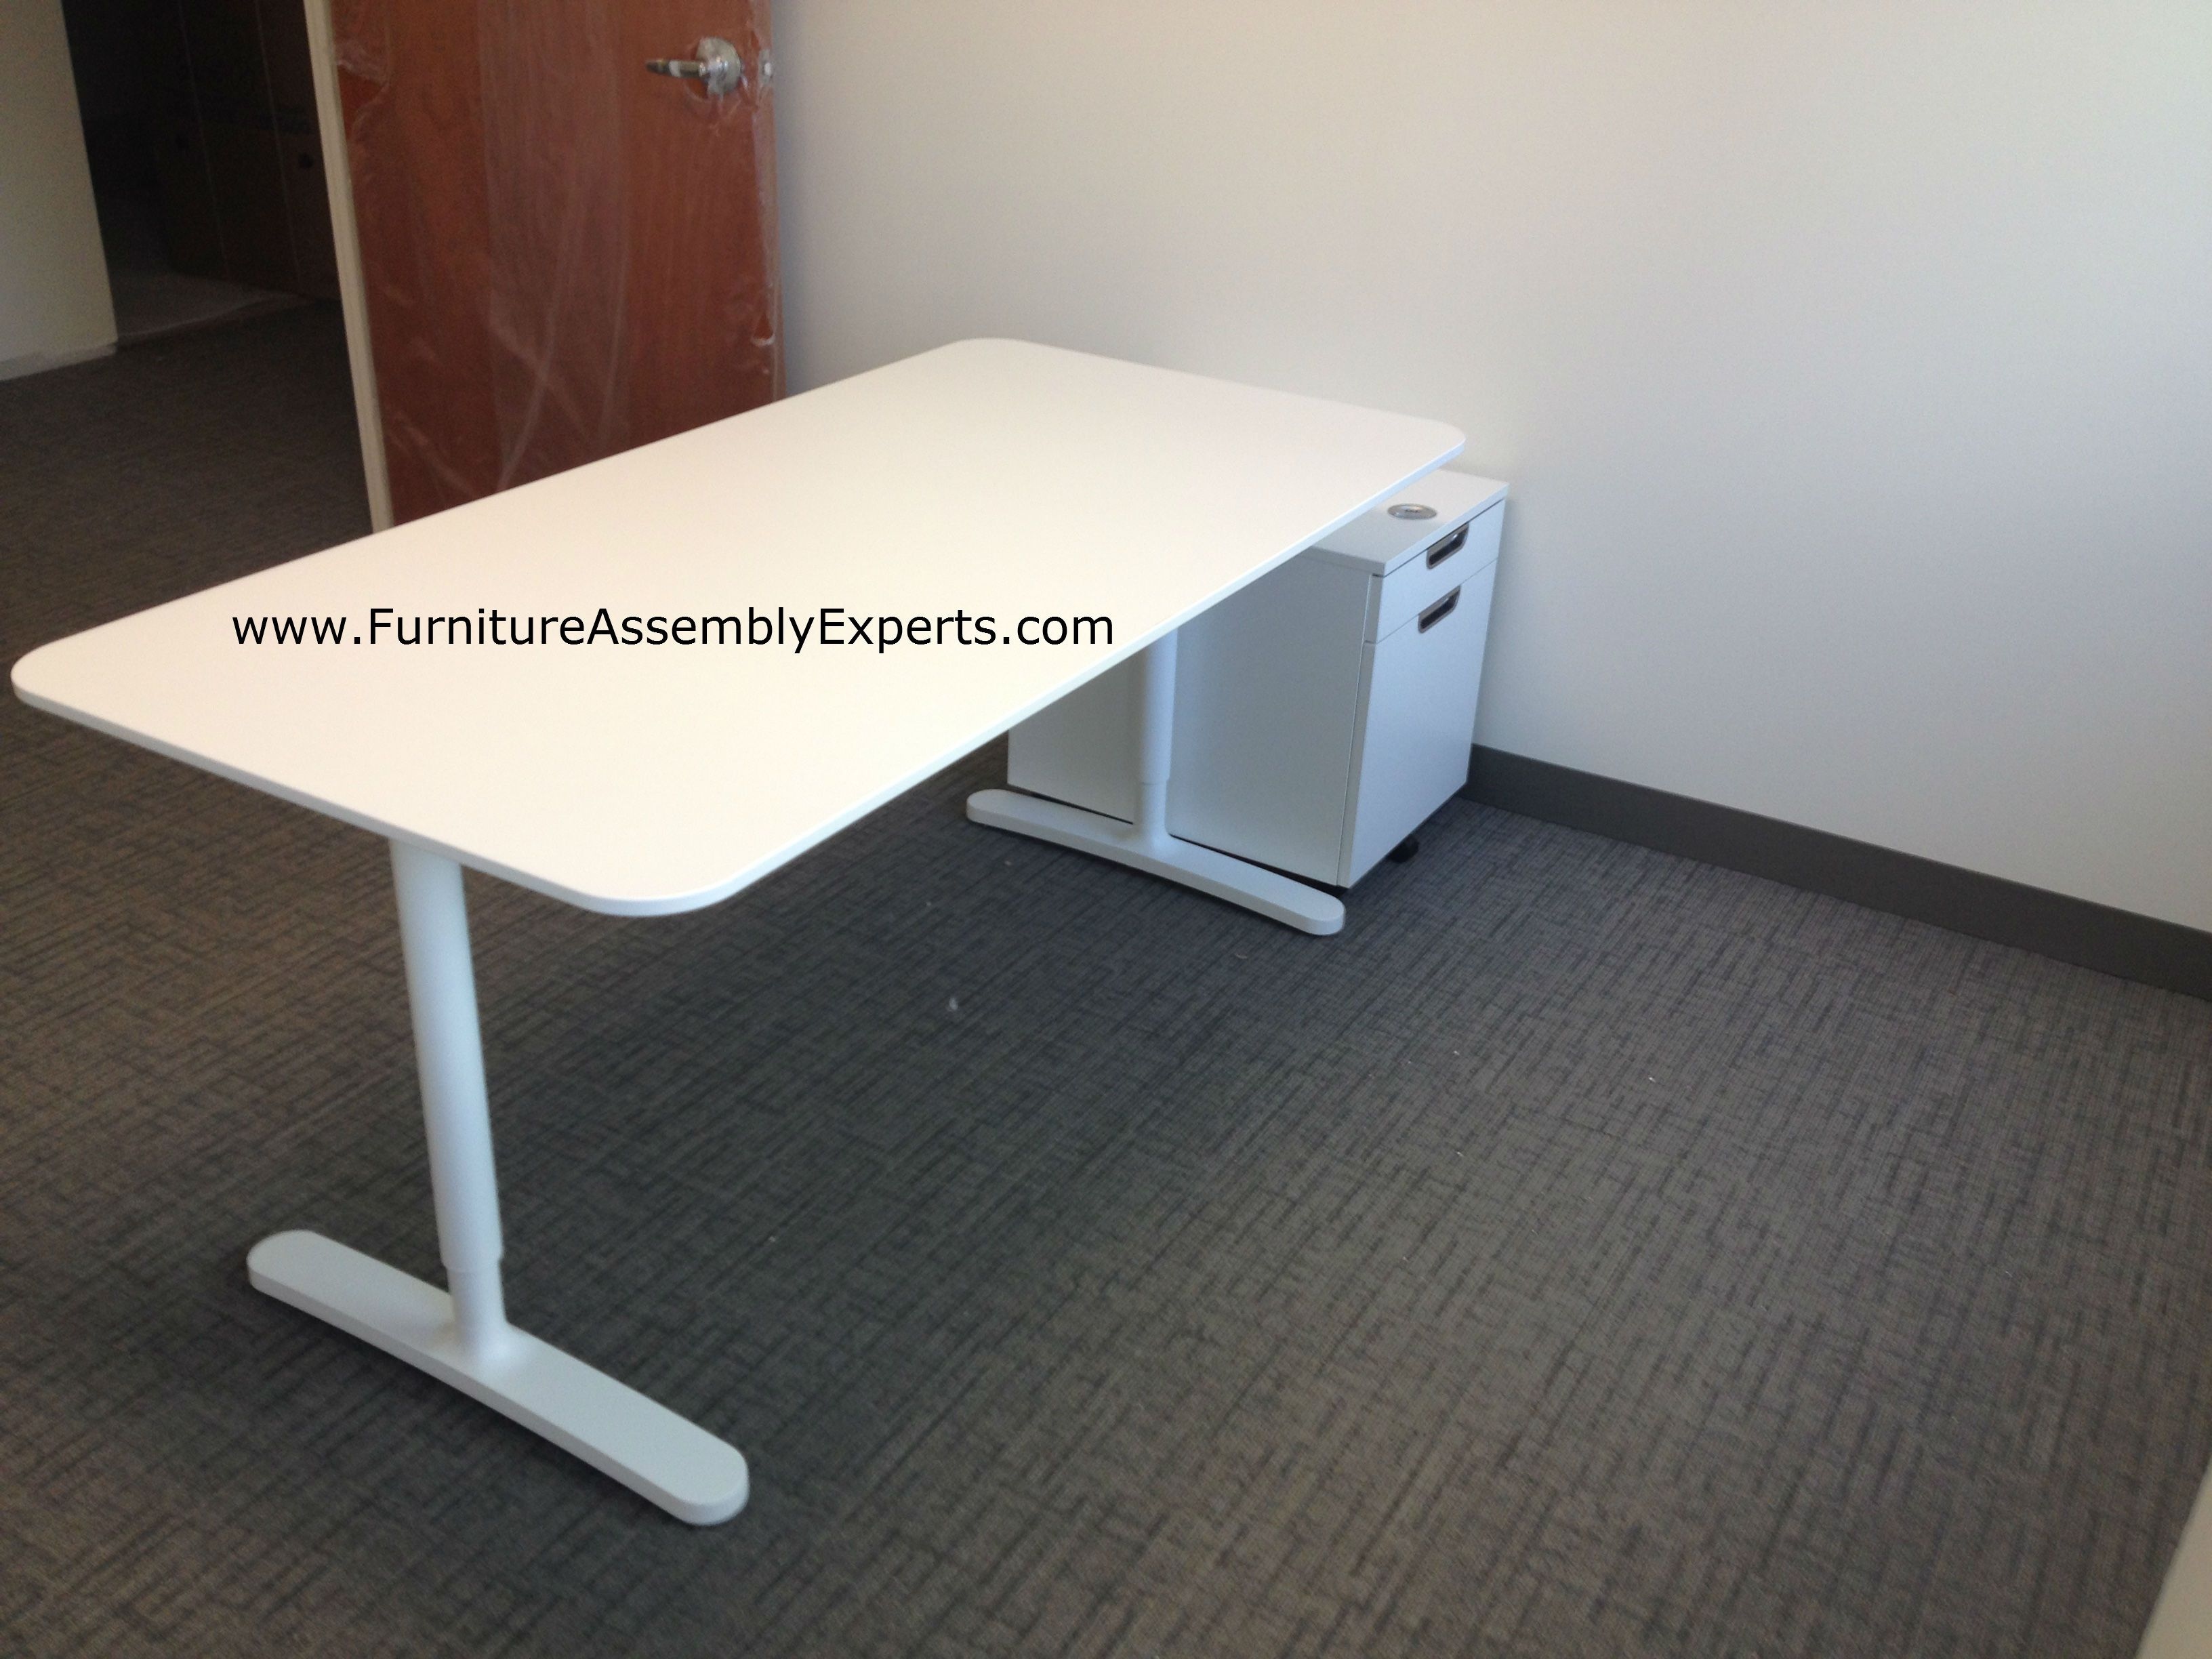 High Quality Ikea Bekant Office Desk And Galant File Cabinets Assembled In Bethesda MD  By Furniture Assembly Experts LLC Pictures